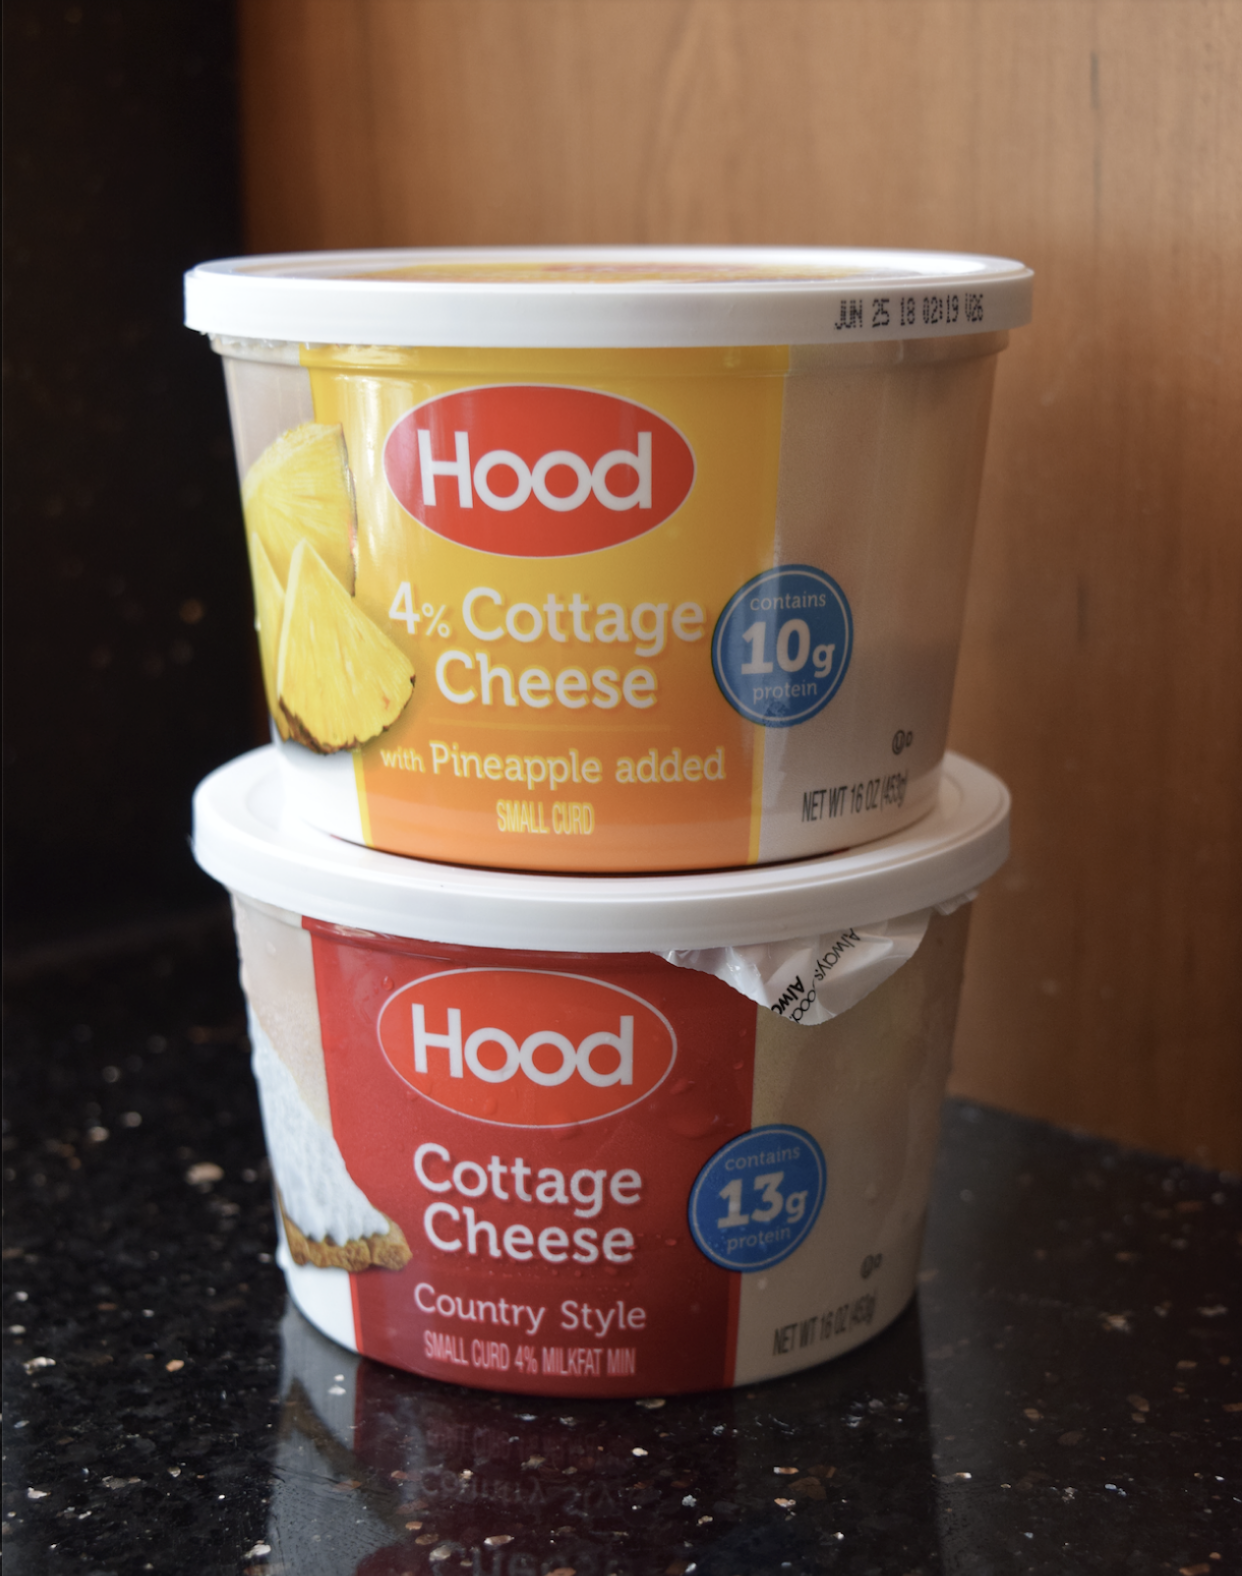 Hood Cottage Cheese is so creamy and has perfectly blended flavors with each bite.  And if you're anything like me and you look at the nutrition labels before you buy a product, you'll be glad to know that Hood Cottage Cheese is a great source of calcium and is packed with 10+ grams of protein per serving!